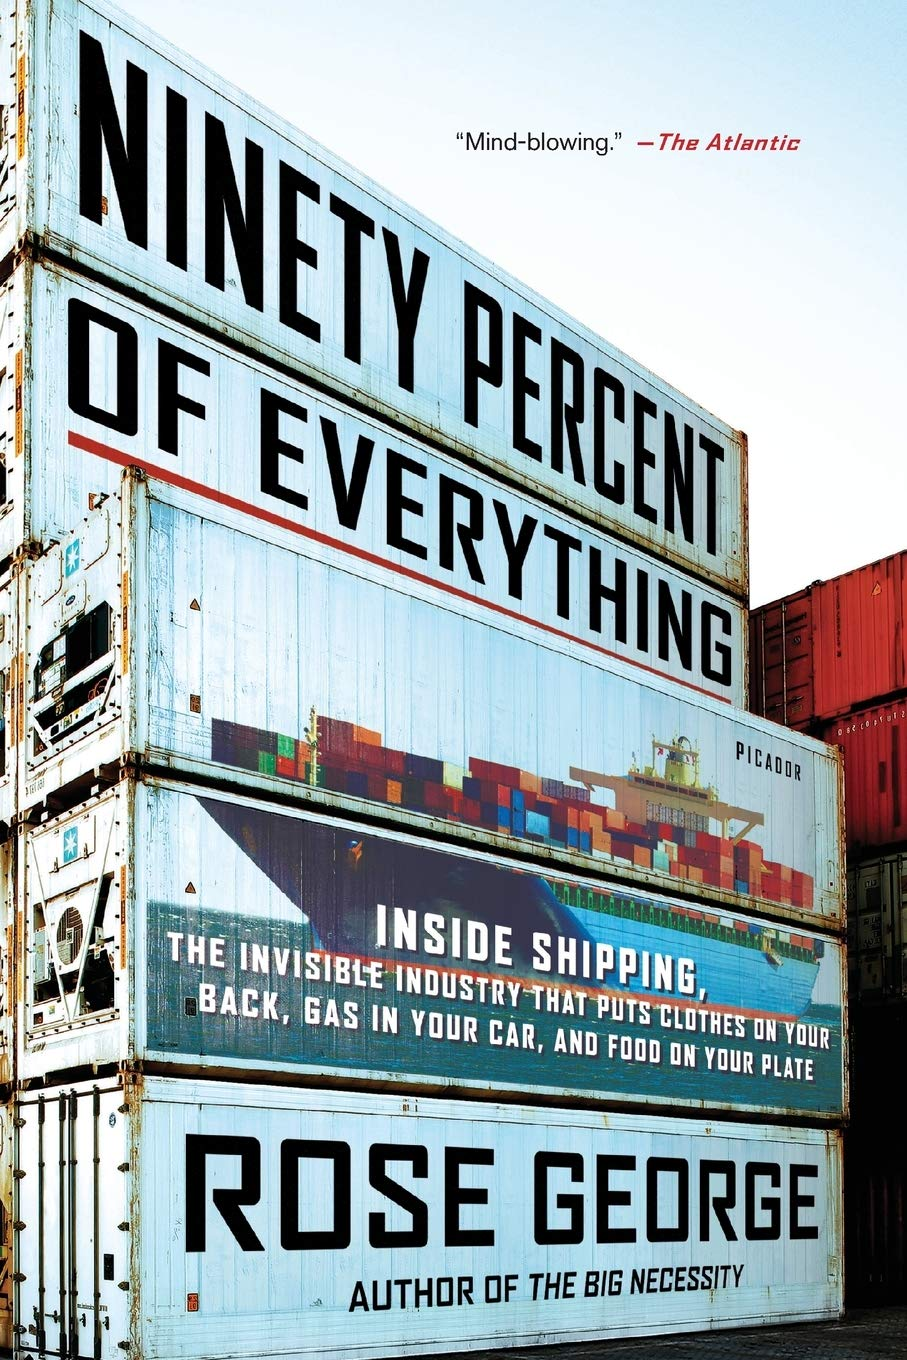 Image OfNinety Percent Of Everything: Inside Shipping, The Invisible Industry That Puts Clothes On Your Back, Gas In Your Car, And...